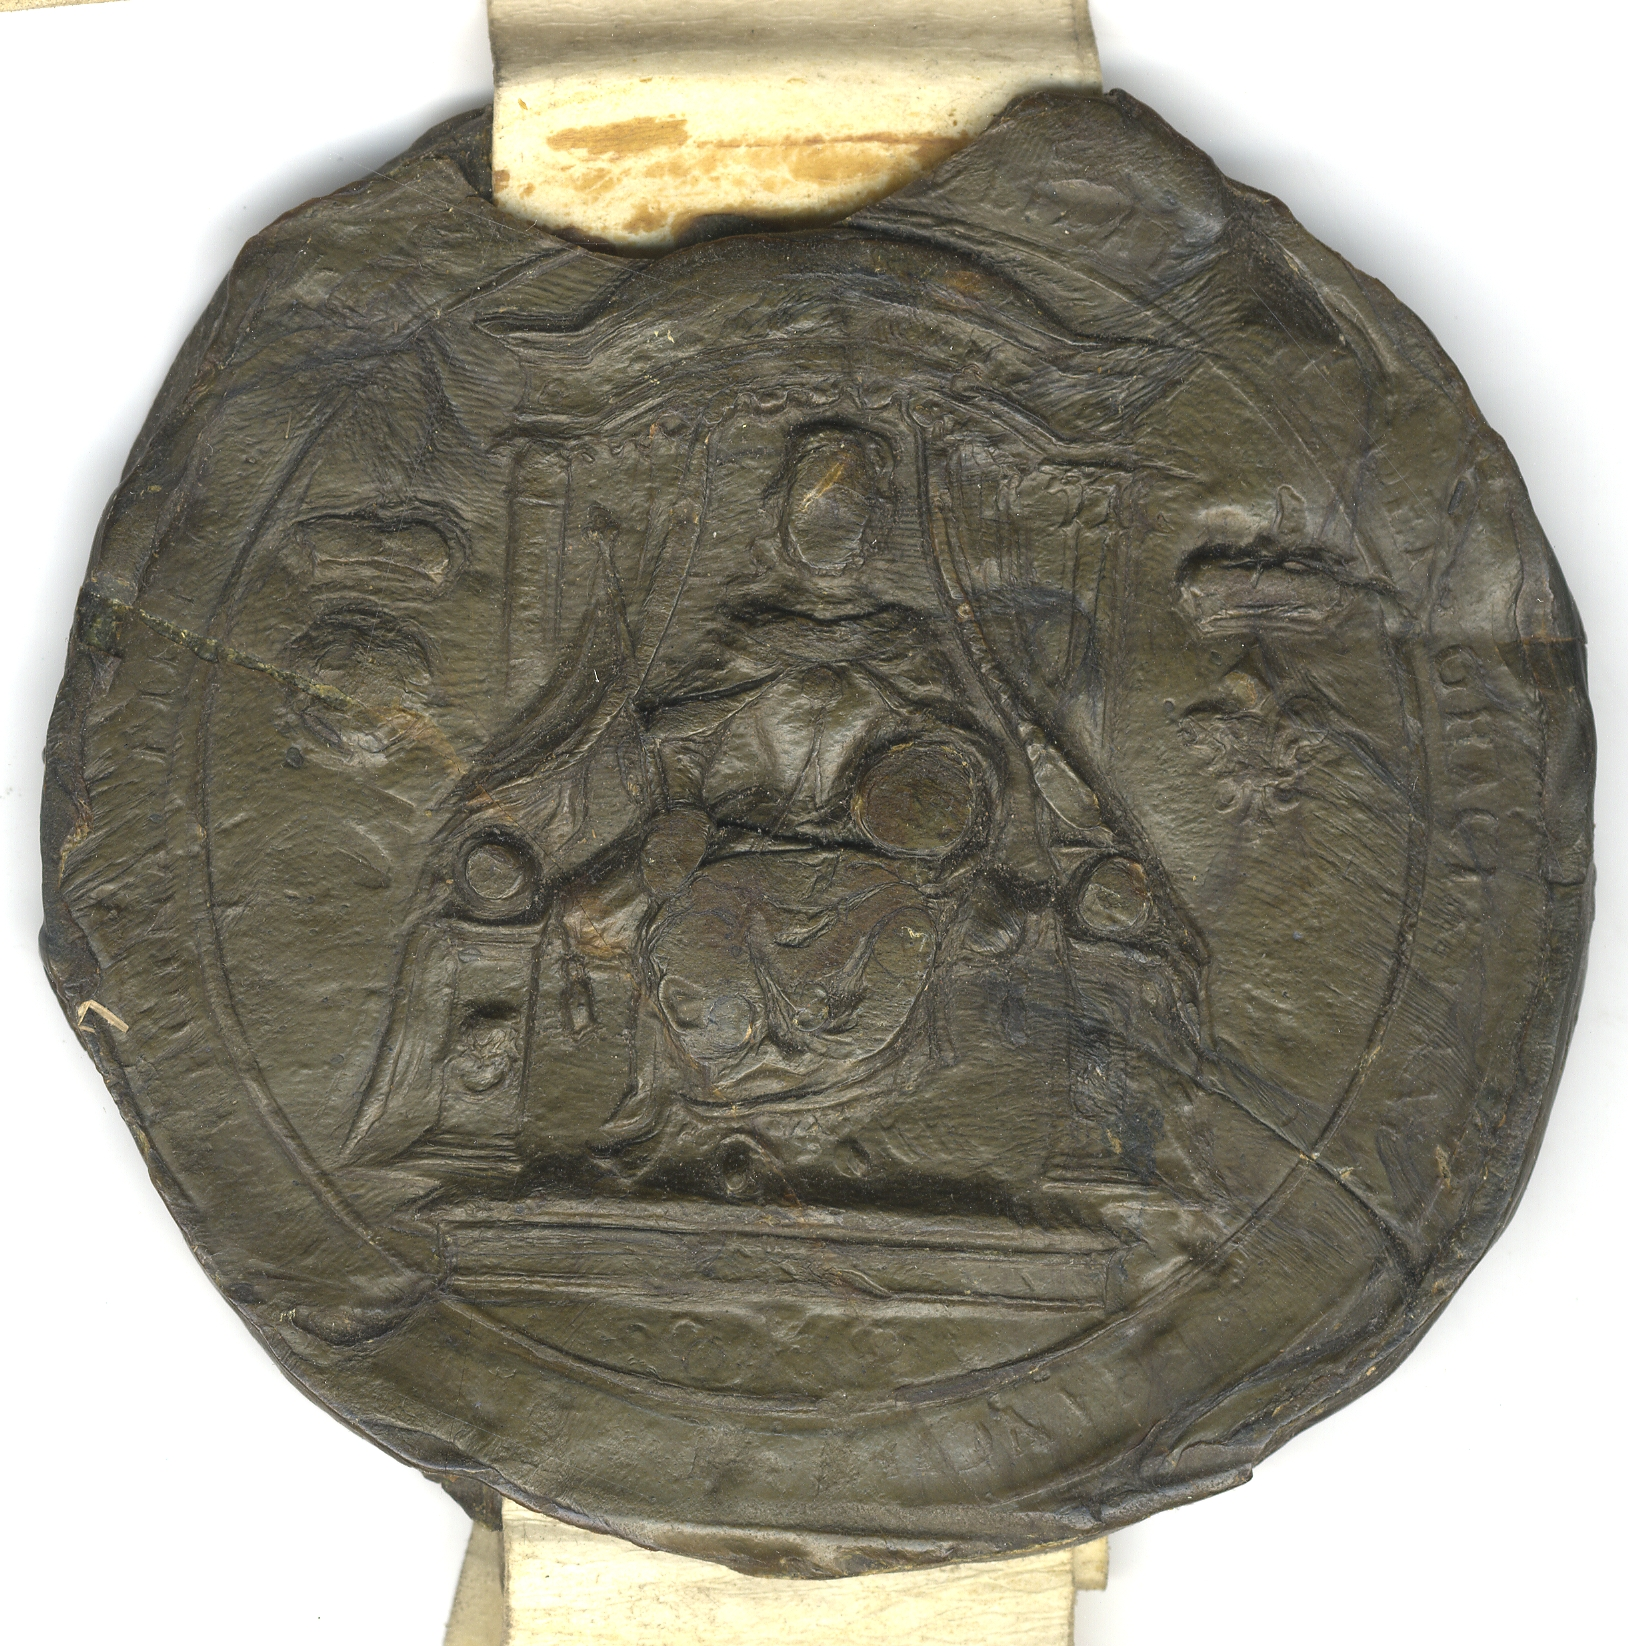 Privy Seal of Elizabeth I, the Queen enthroned. (SAC/60)